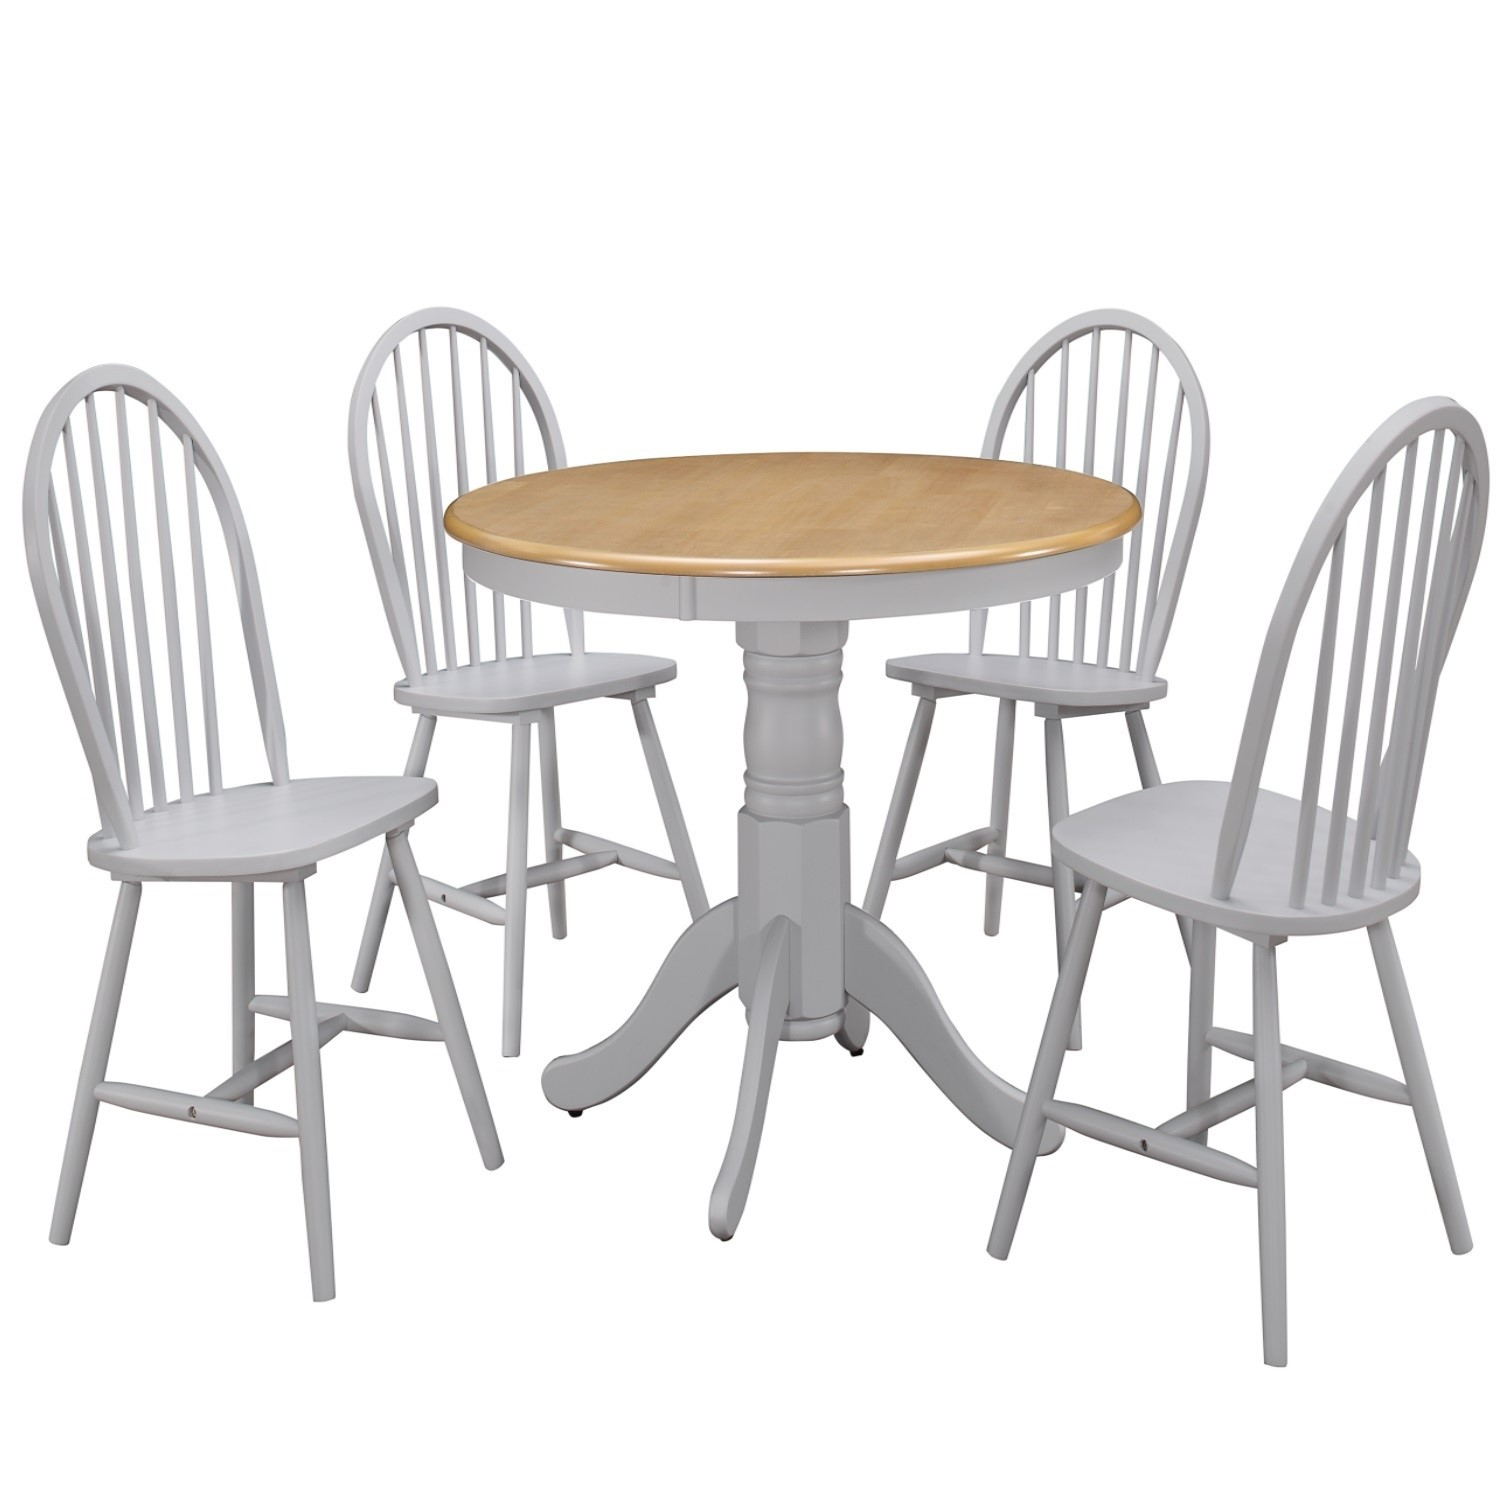 Rhode Island Round Dining Table with 4 Chairs in /& Grey with Oak Finish